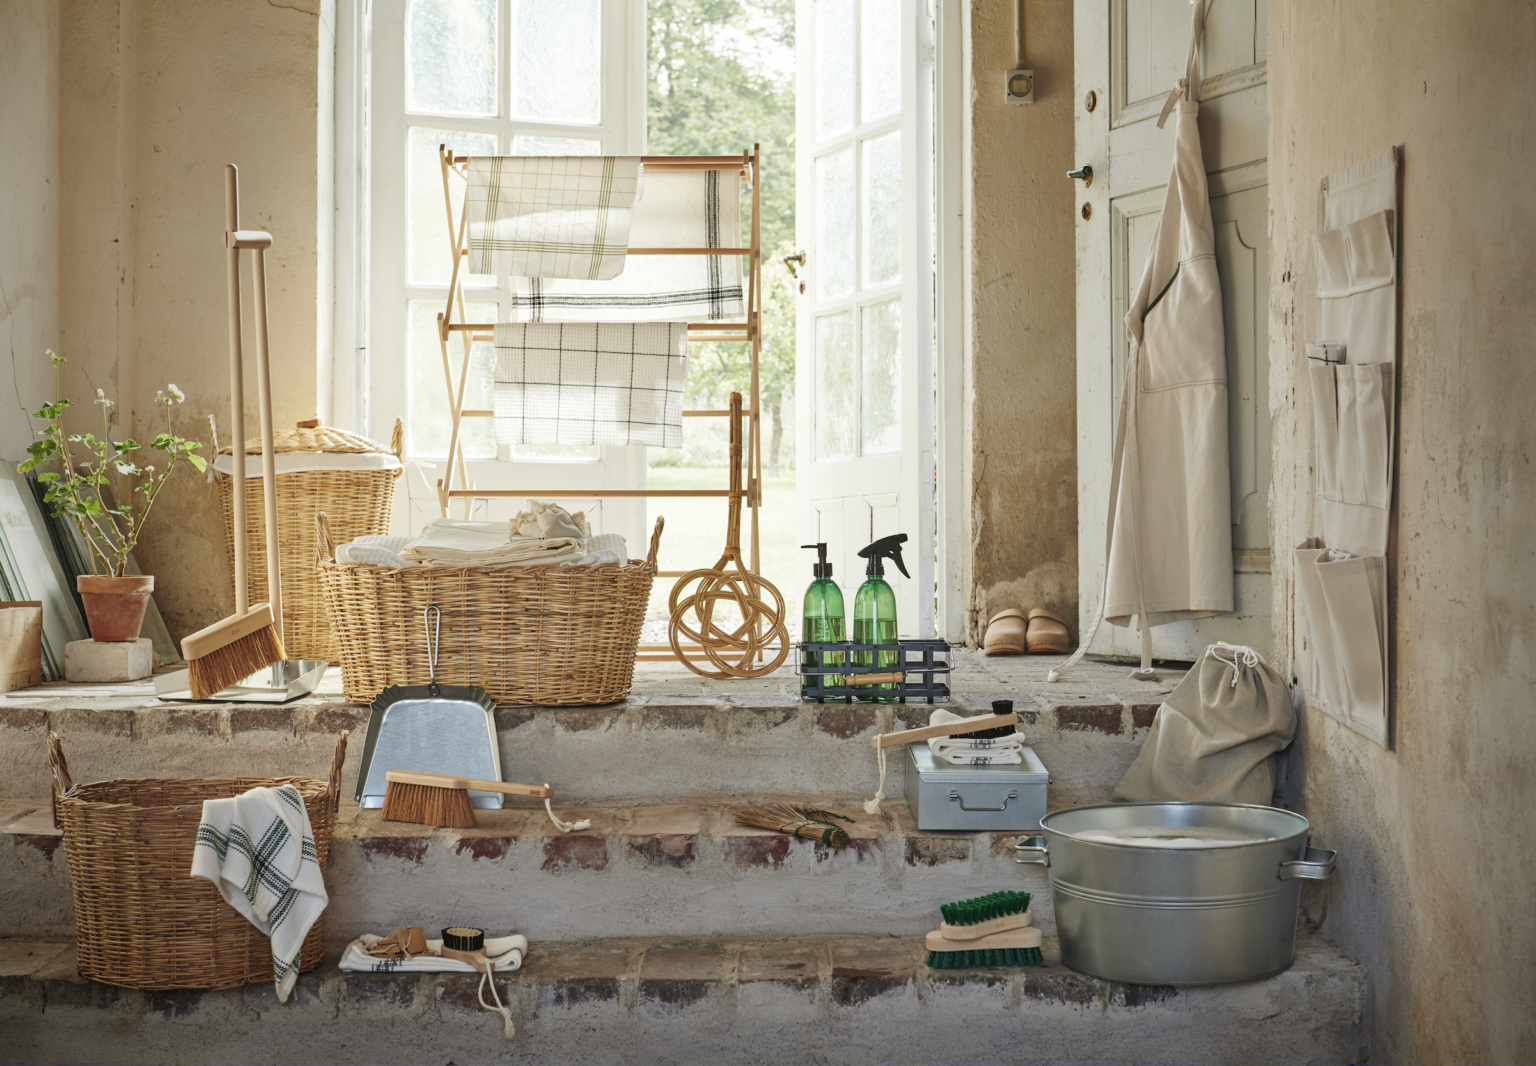 Domestic Science: A New Limited-Edition Collection of Household Wares from Ikea